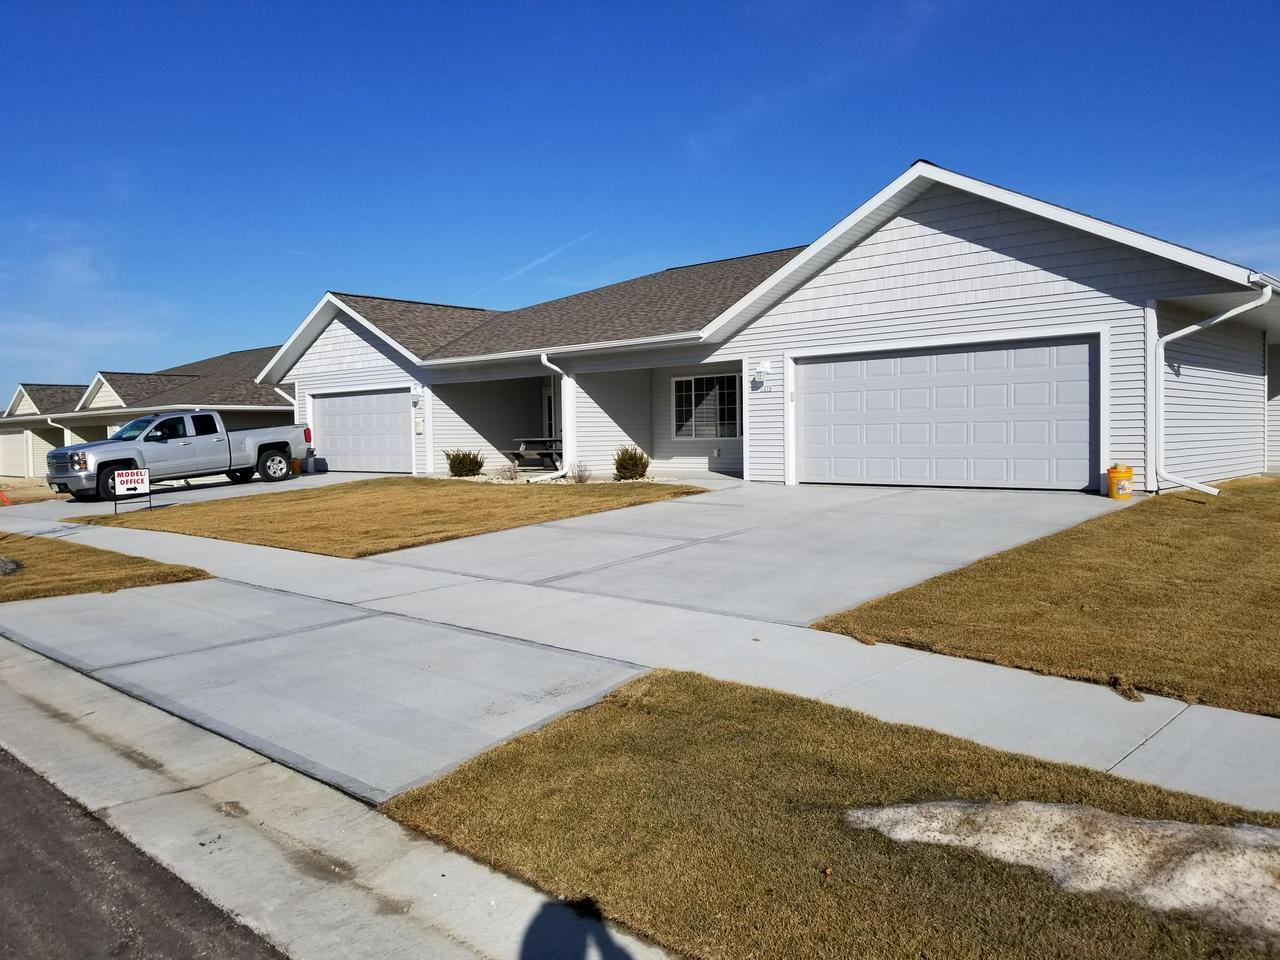 New construction for 2018.  1st floor senior ranch ready to move in Fall of 2018.  3BR, 2Ba, 2 car garage, utility/storage room, snack bar, pantry, 1,700 sq ft.  No step at front, back and garage.  Walk in closets, 3' wide doors.  Front covered sitting porch.  Choose countertops, lights, flooring.  Clubhouse - Hall with Den/Library/Game Room/Patio.  Landscaping/Walks/Drives included.  City Sewer/Water/Streets/Sidewalks.  Low $105/mo fee.  Adjacent City Wooded park.  Garden area each unit.  Walk to shop/eat/bank/medical.  Sold Out!